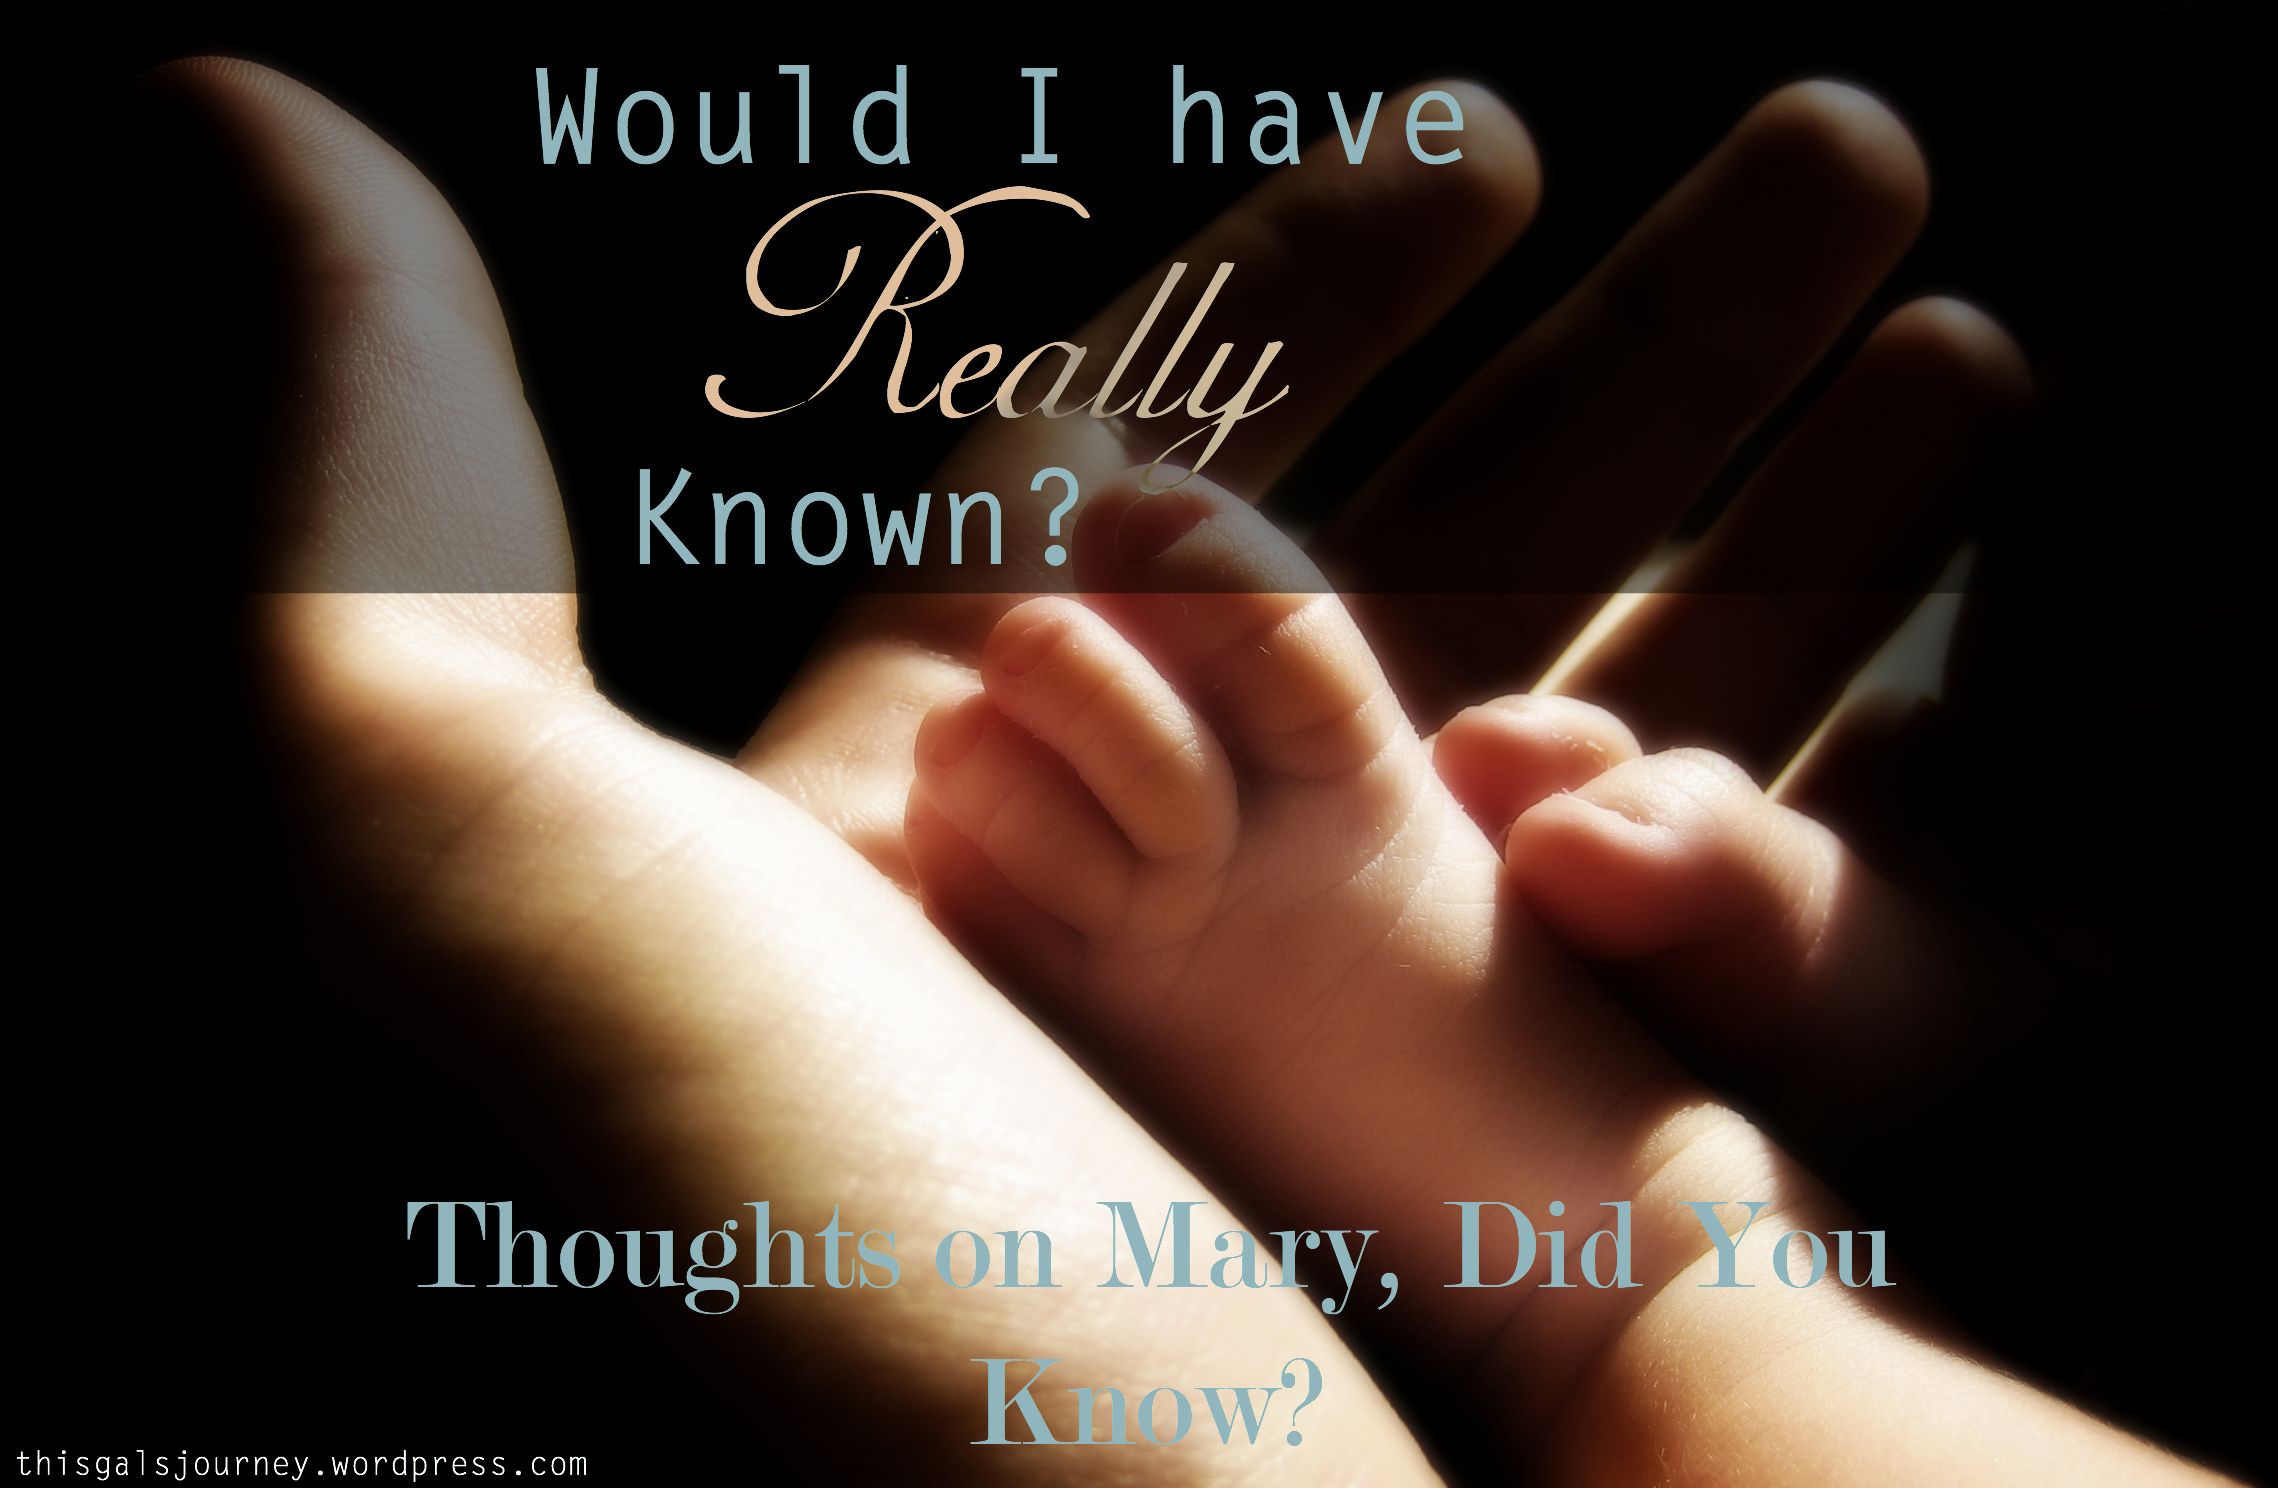 Would I Have Really Known? {Thoughts on 'Mary, Did You Know?'}